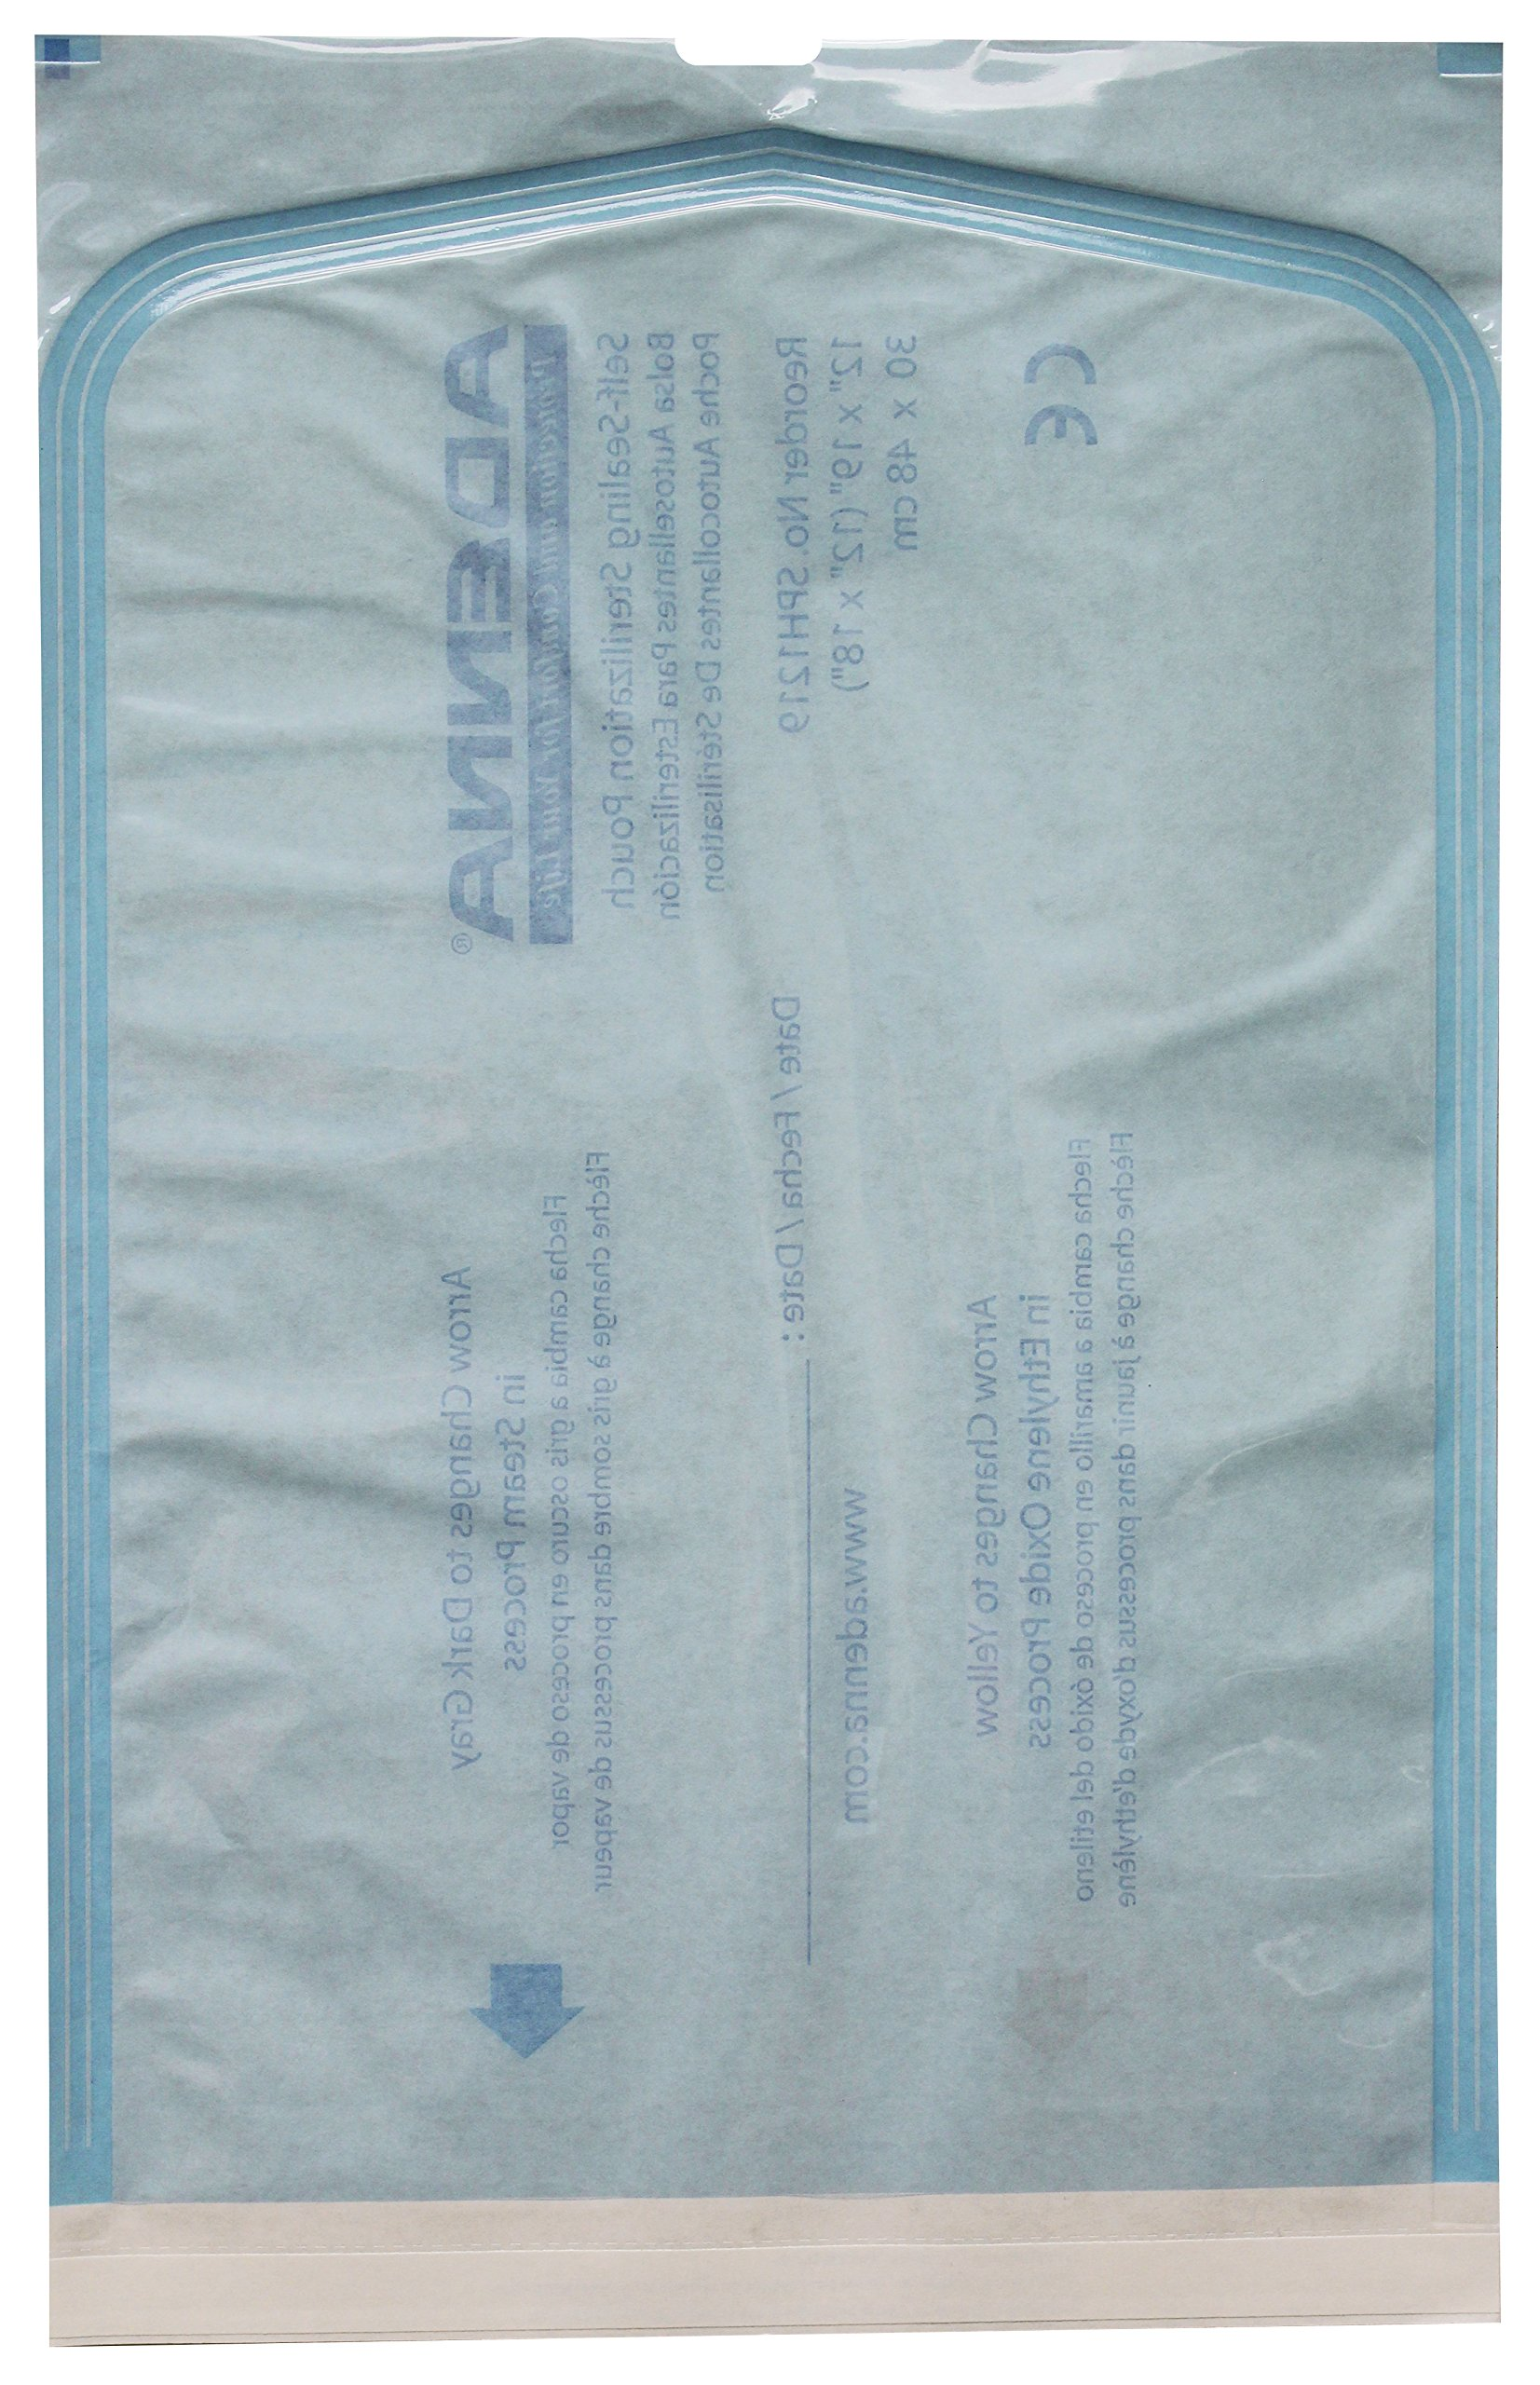 Adenna White Paper/Blue Tinted Film 12'' X 17-3/4 Sterilization Pouch (Box of 100)